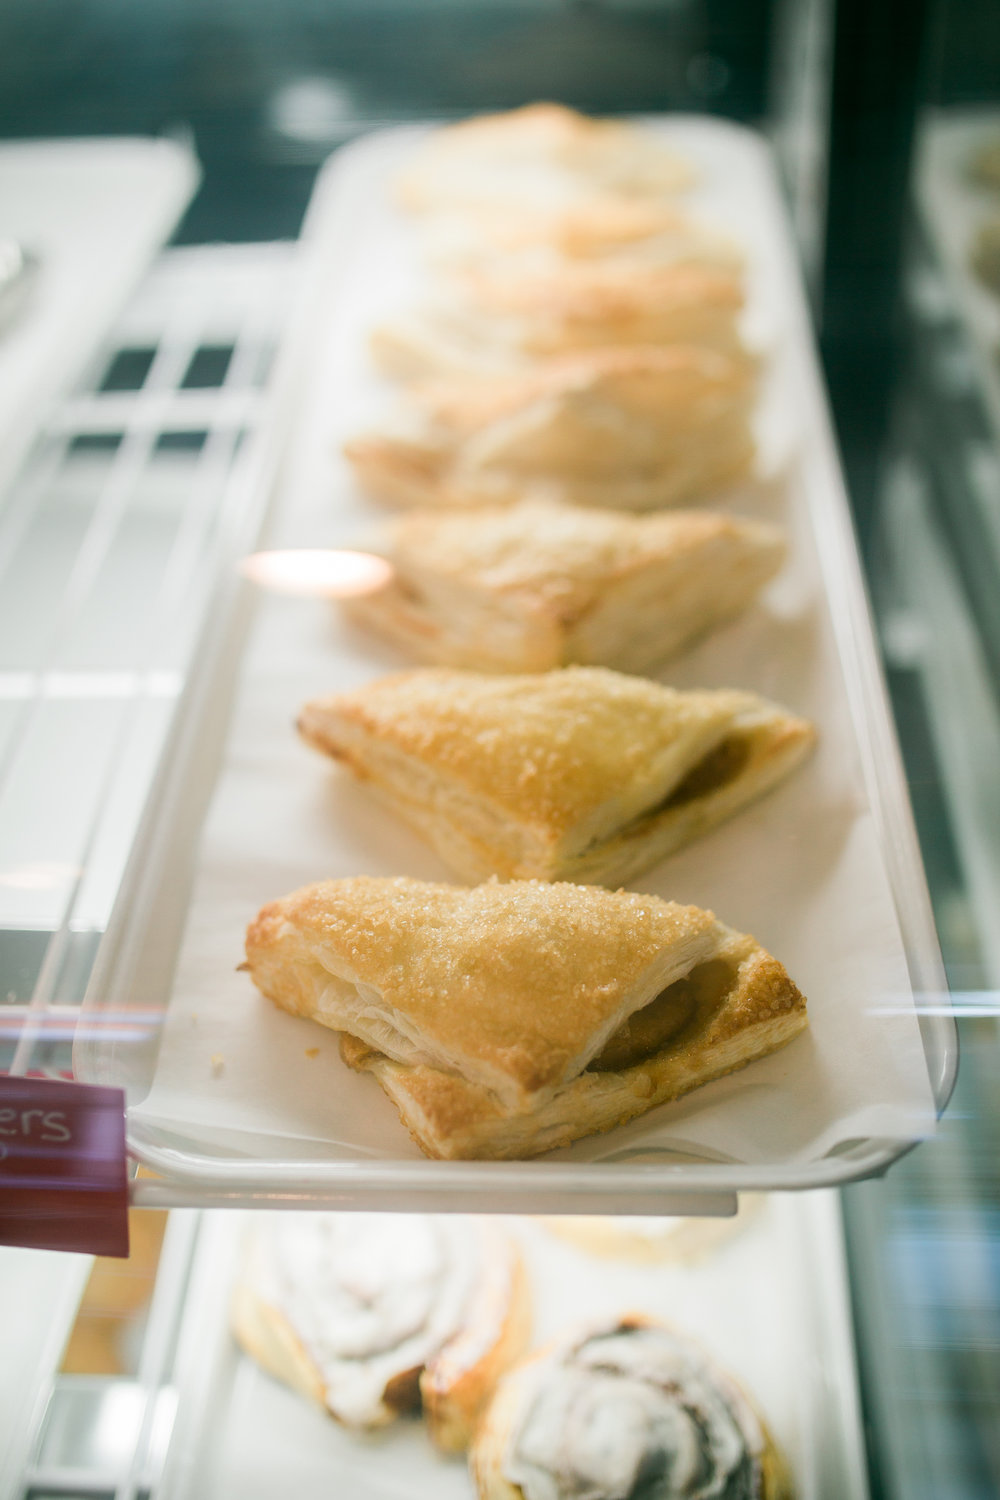 a row of fruit-filled turnovers inside a dessert display